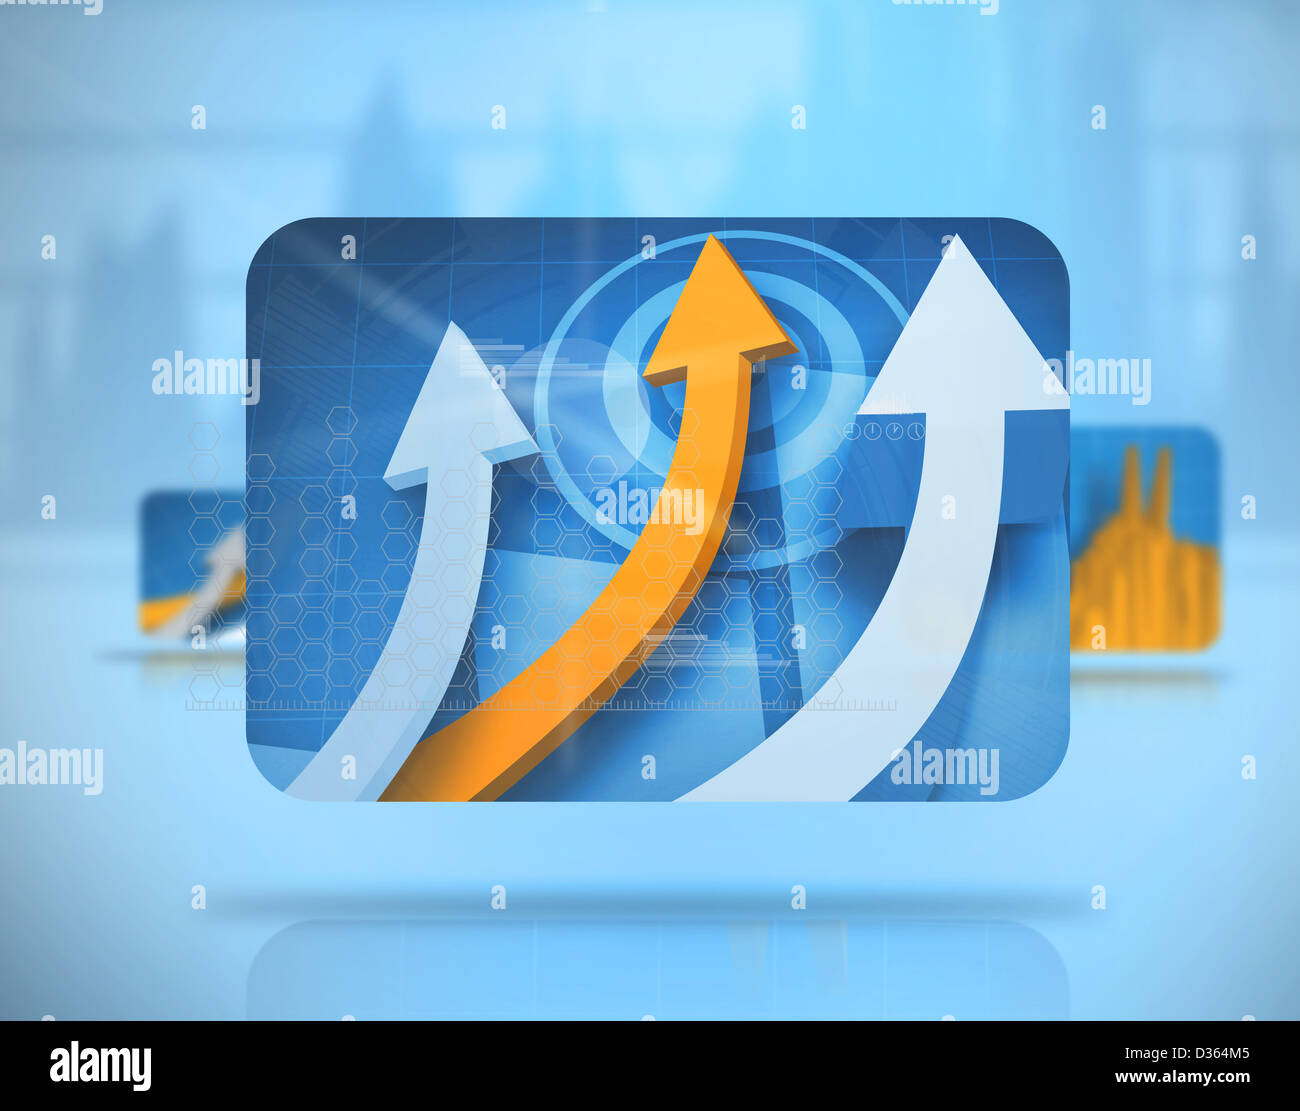 Digital blue background with screens including graphs - Stock Image